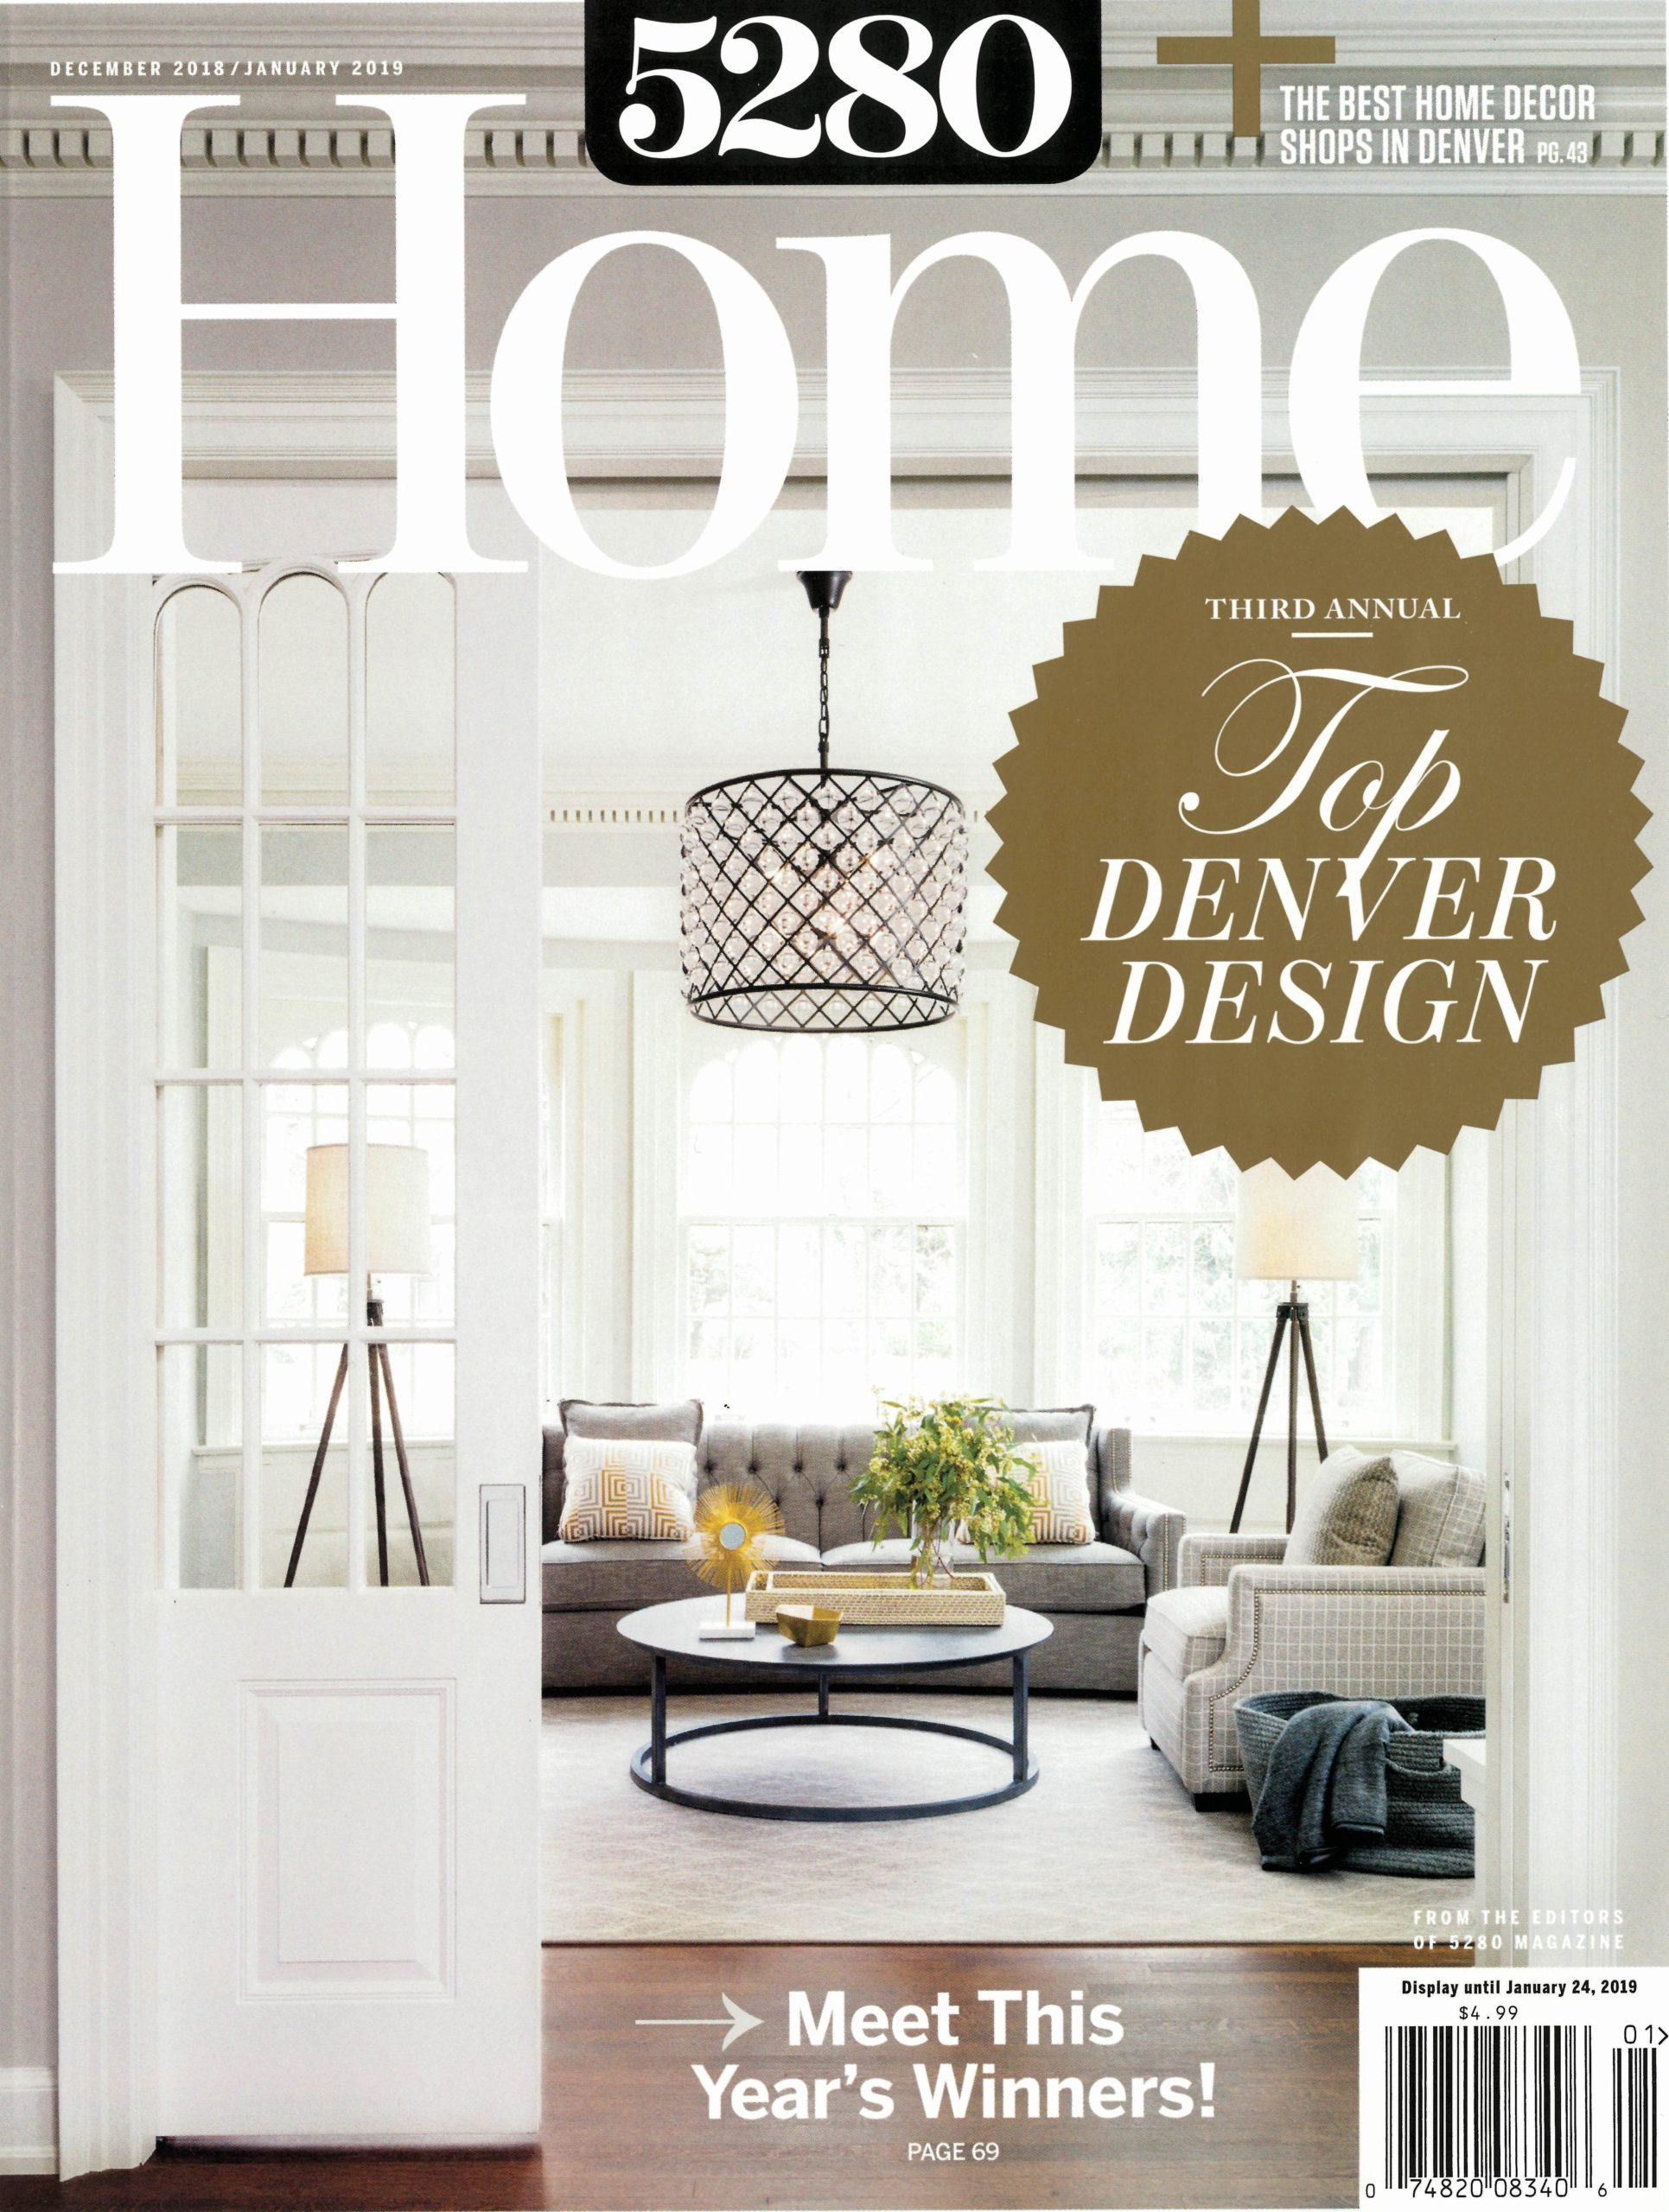 5280 Home magazine press for Renée del Gaudio Architecture.